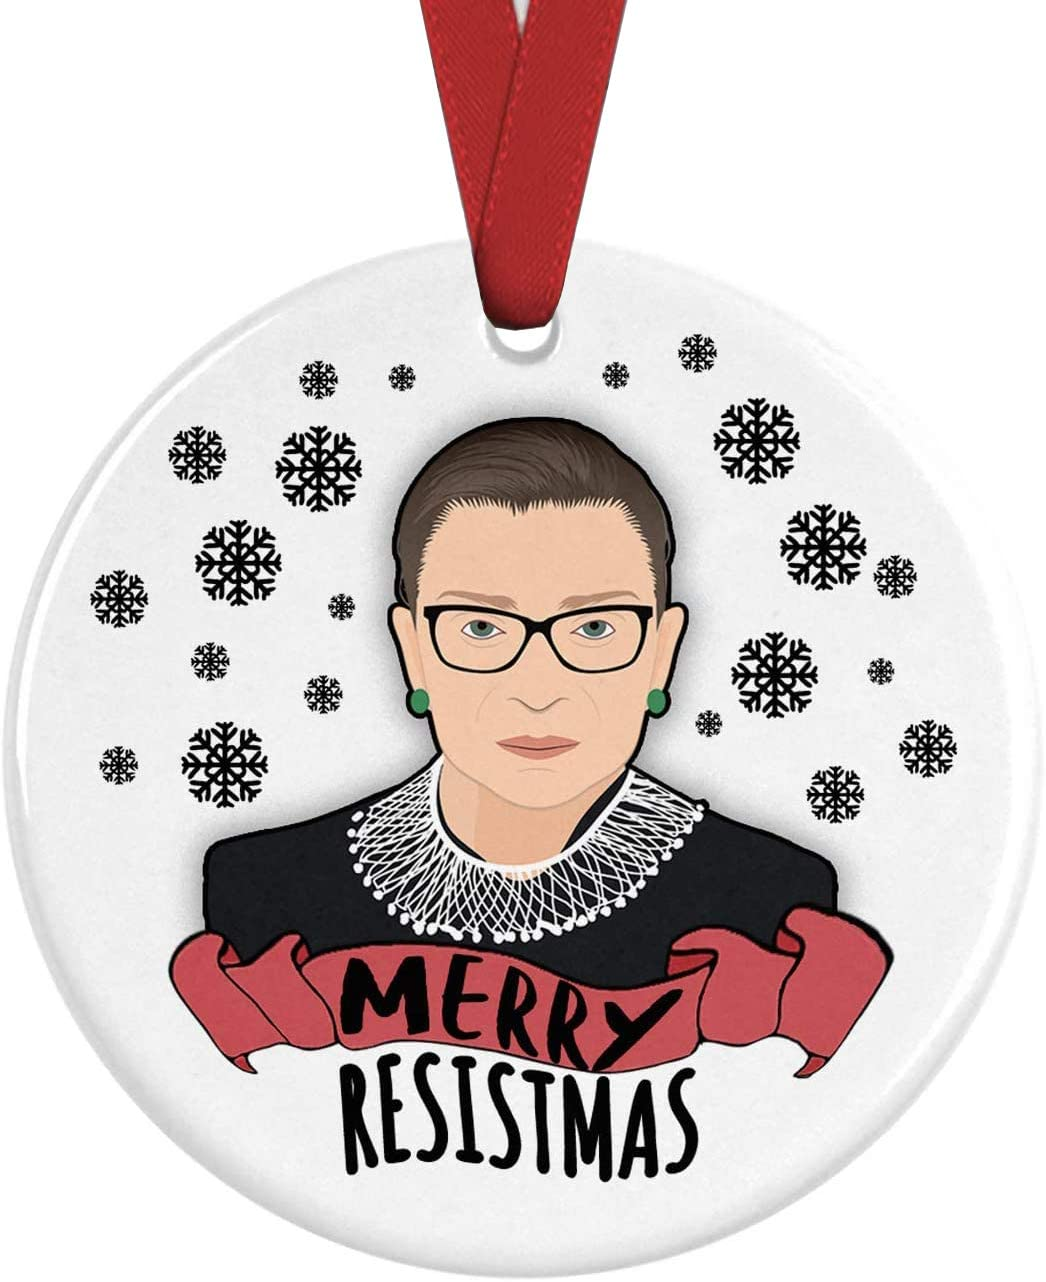 Ruth Bader Ginsburg Christmas Tree Ornament Merry Resistmas Notorious RBG Supreme Court Feminist Feminism Dissent